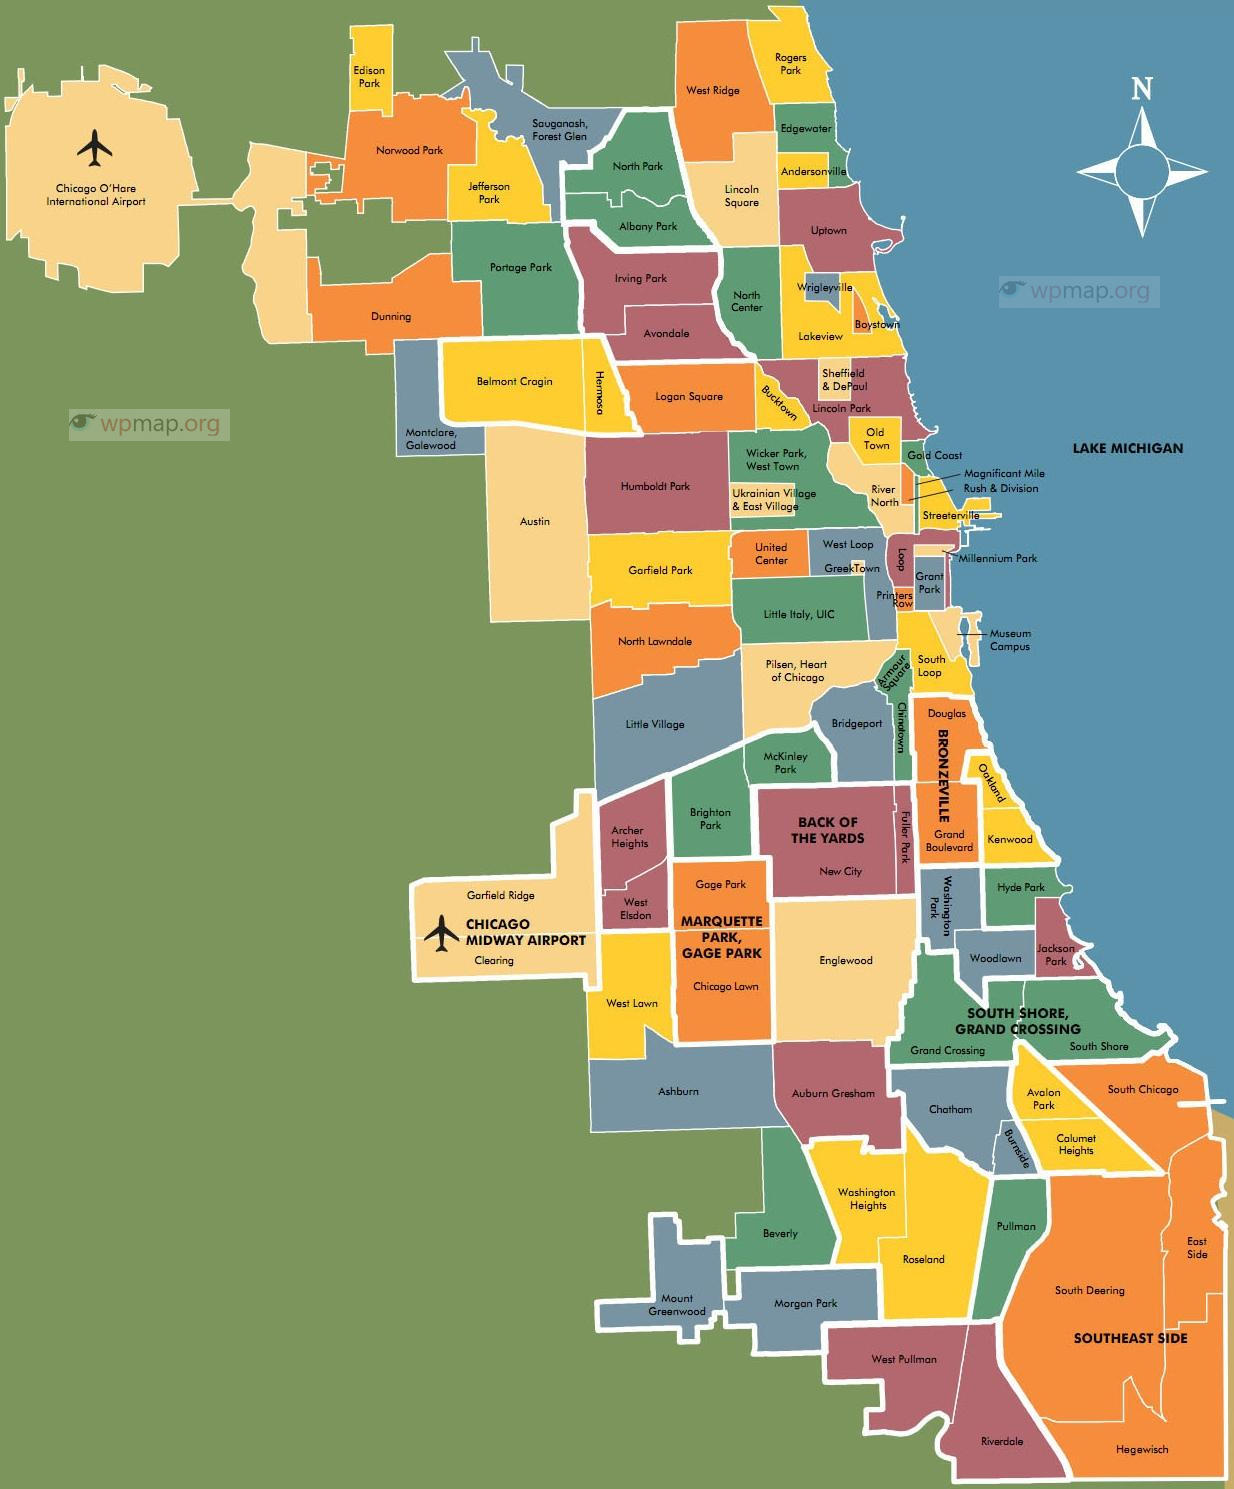 photo regarding Printable Maps of Chicago identified as Map of Chicago - Printable Map of Chicago - Chicago Map United states of america